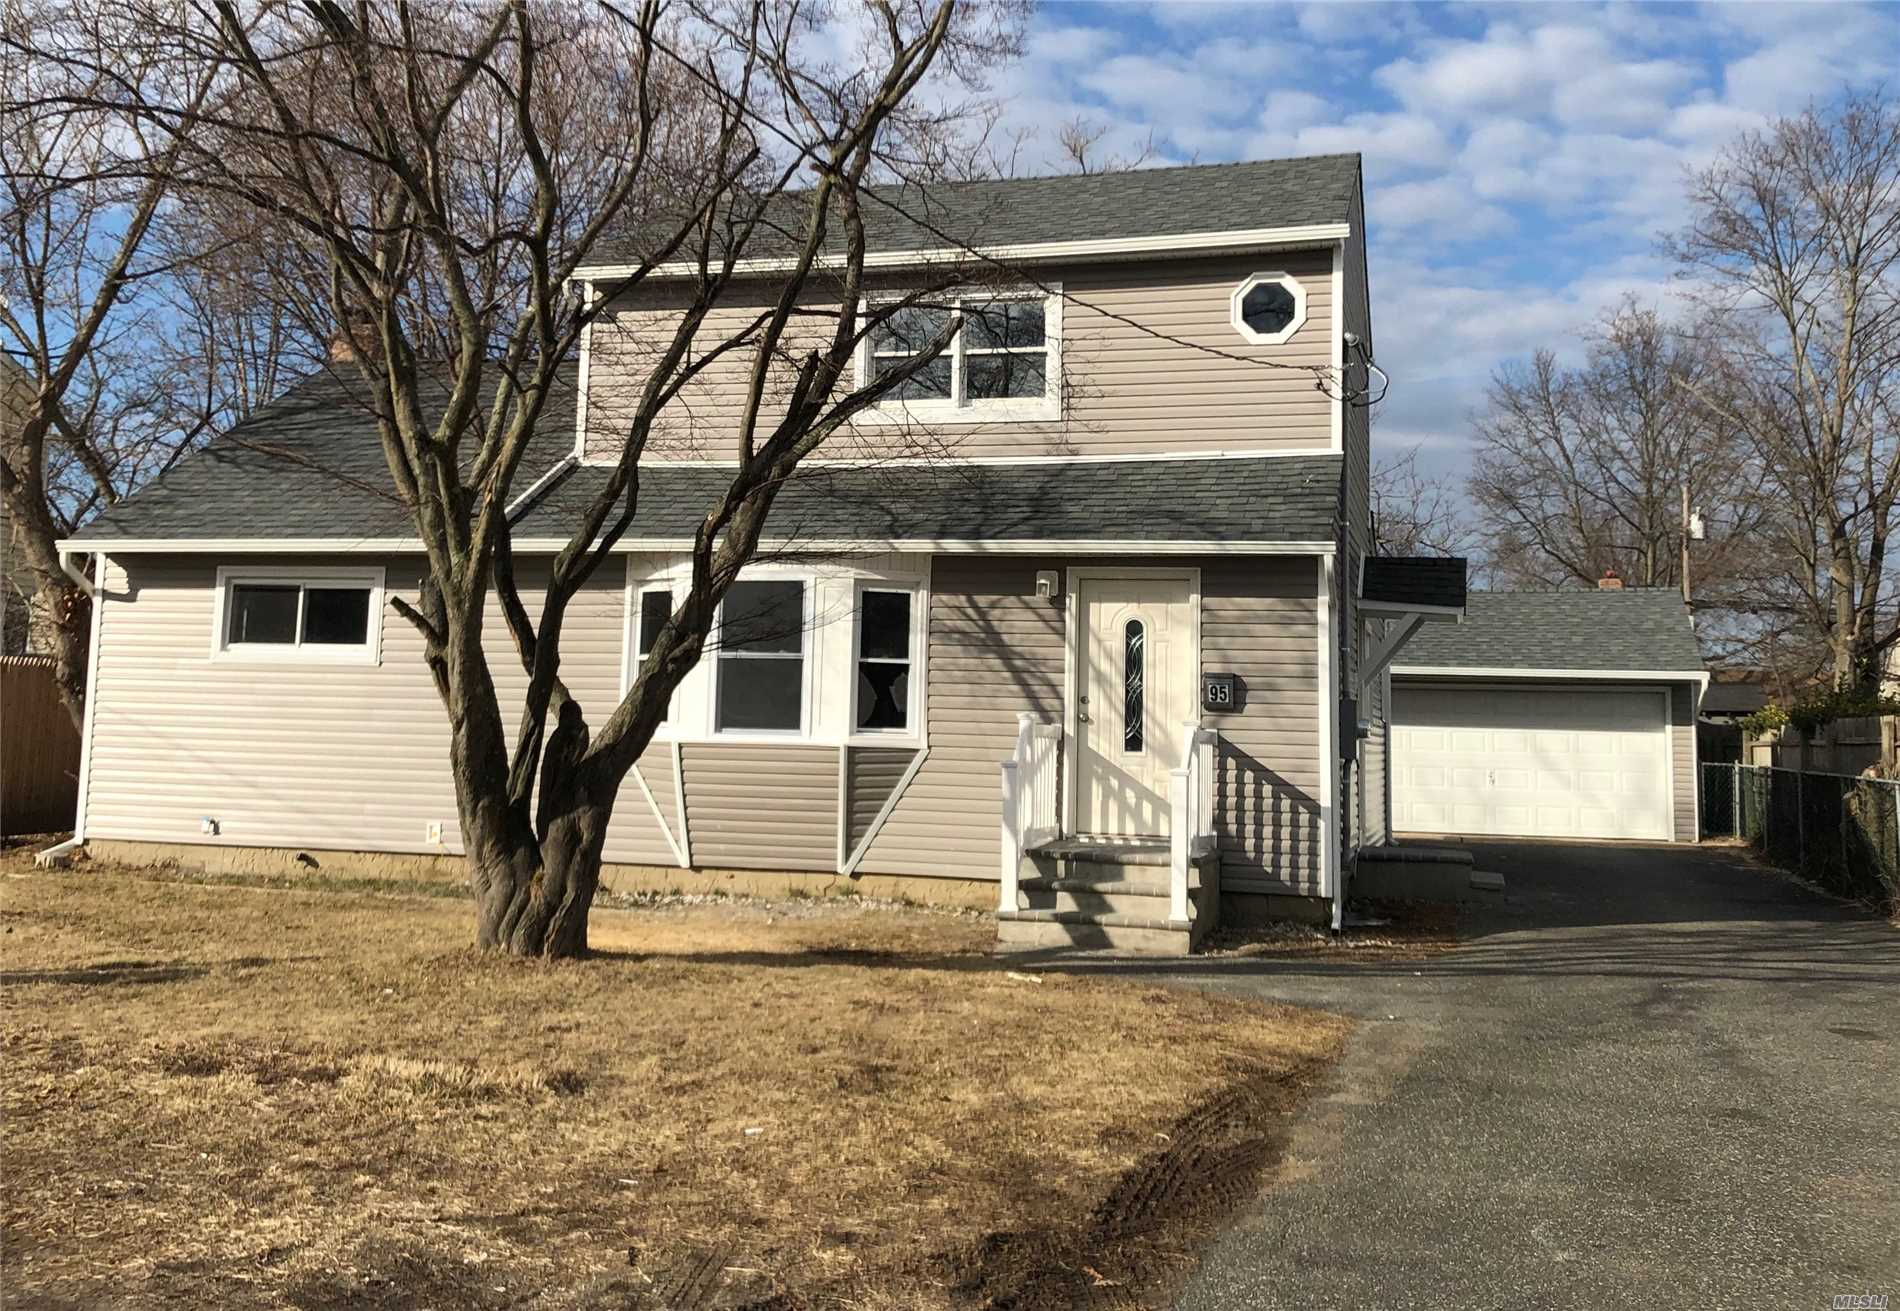 Renovated Cape With Bright Living Room And Crown Moldings, New Kitchen W/Stainless Steel Appliances, New Bathrooms, Master Bedroom With Bath And Walking Closet. New Roof, New Siding, All New Electrical & Pluming, Large Finish Basement.